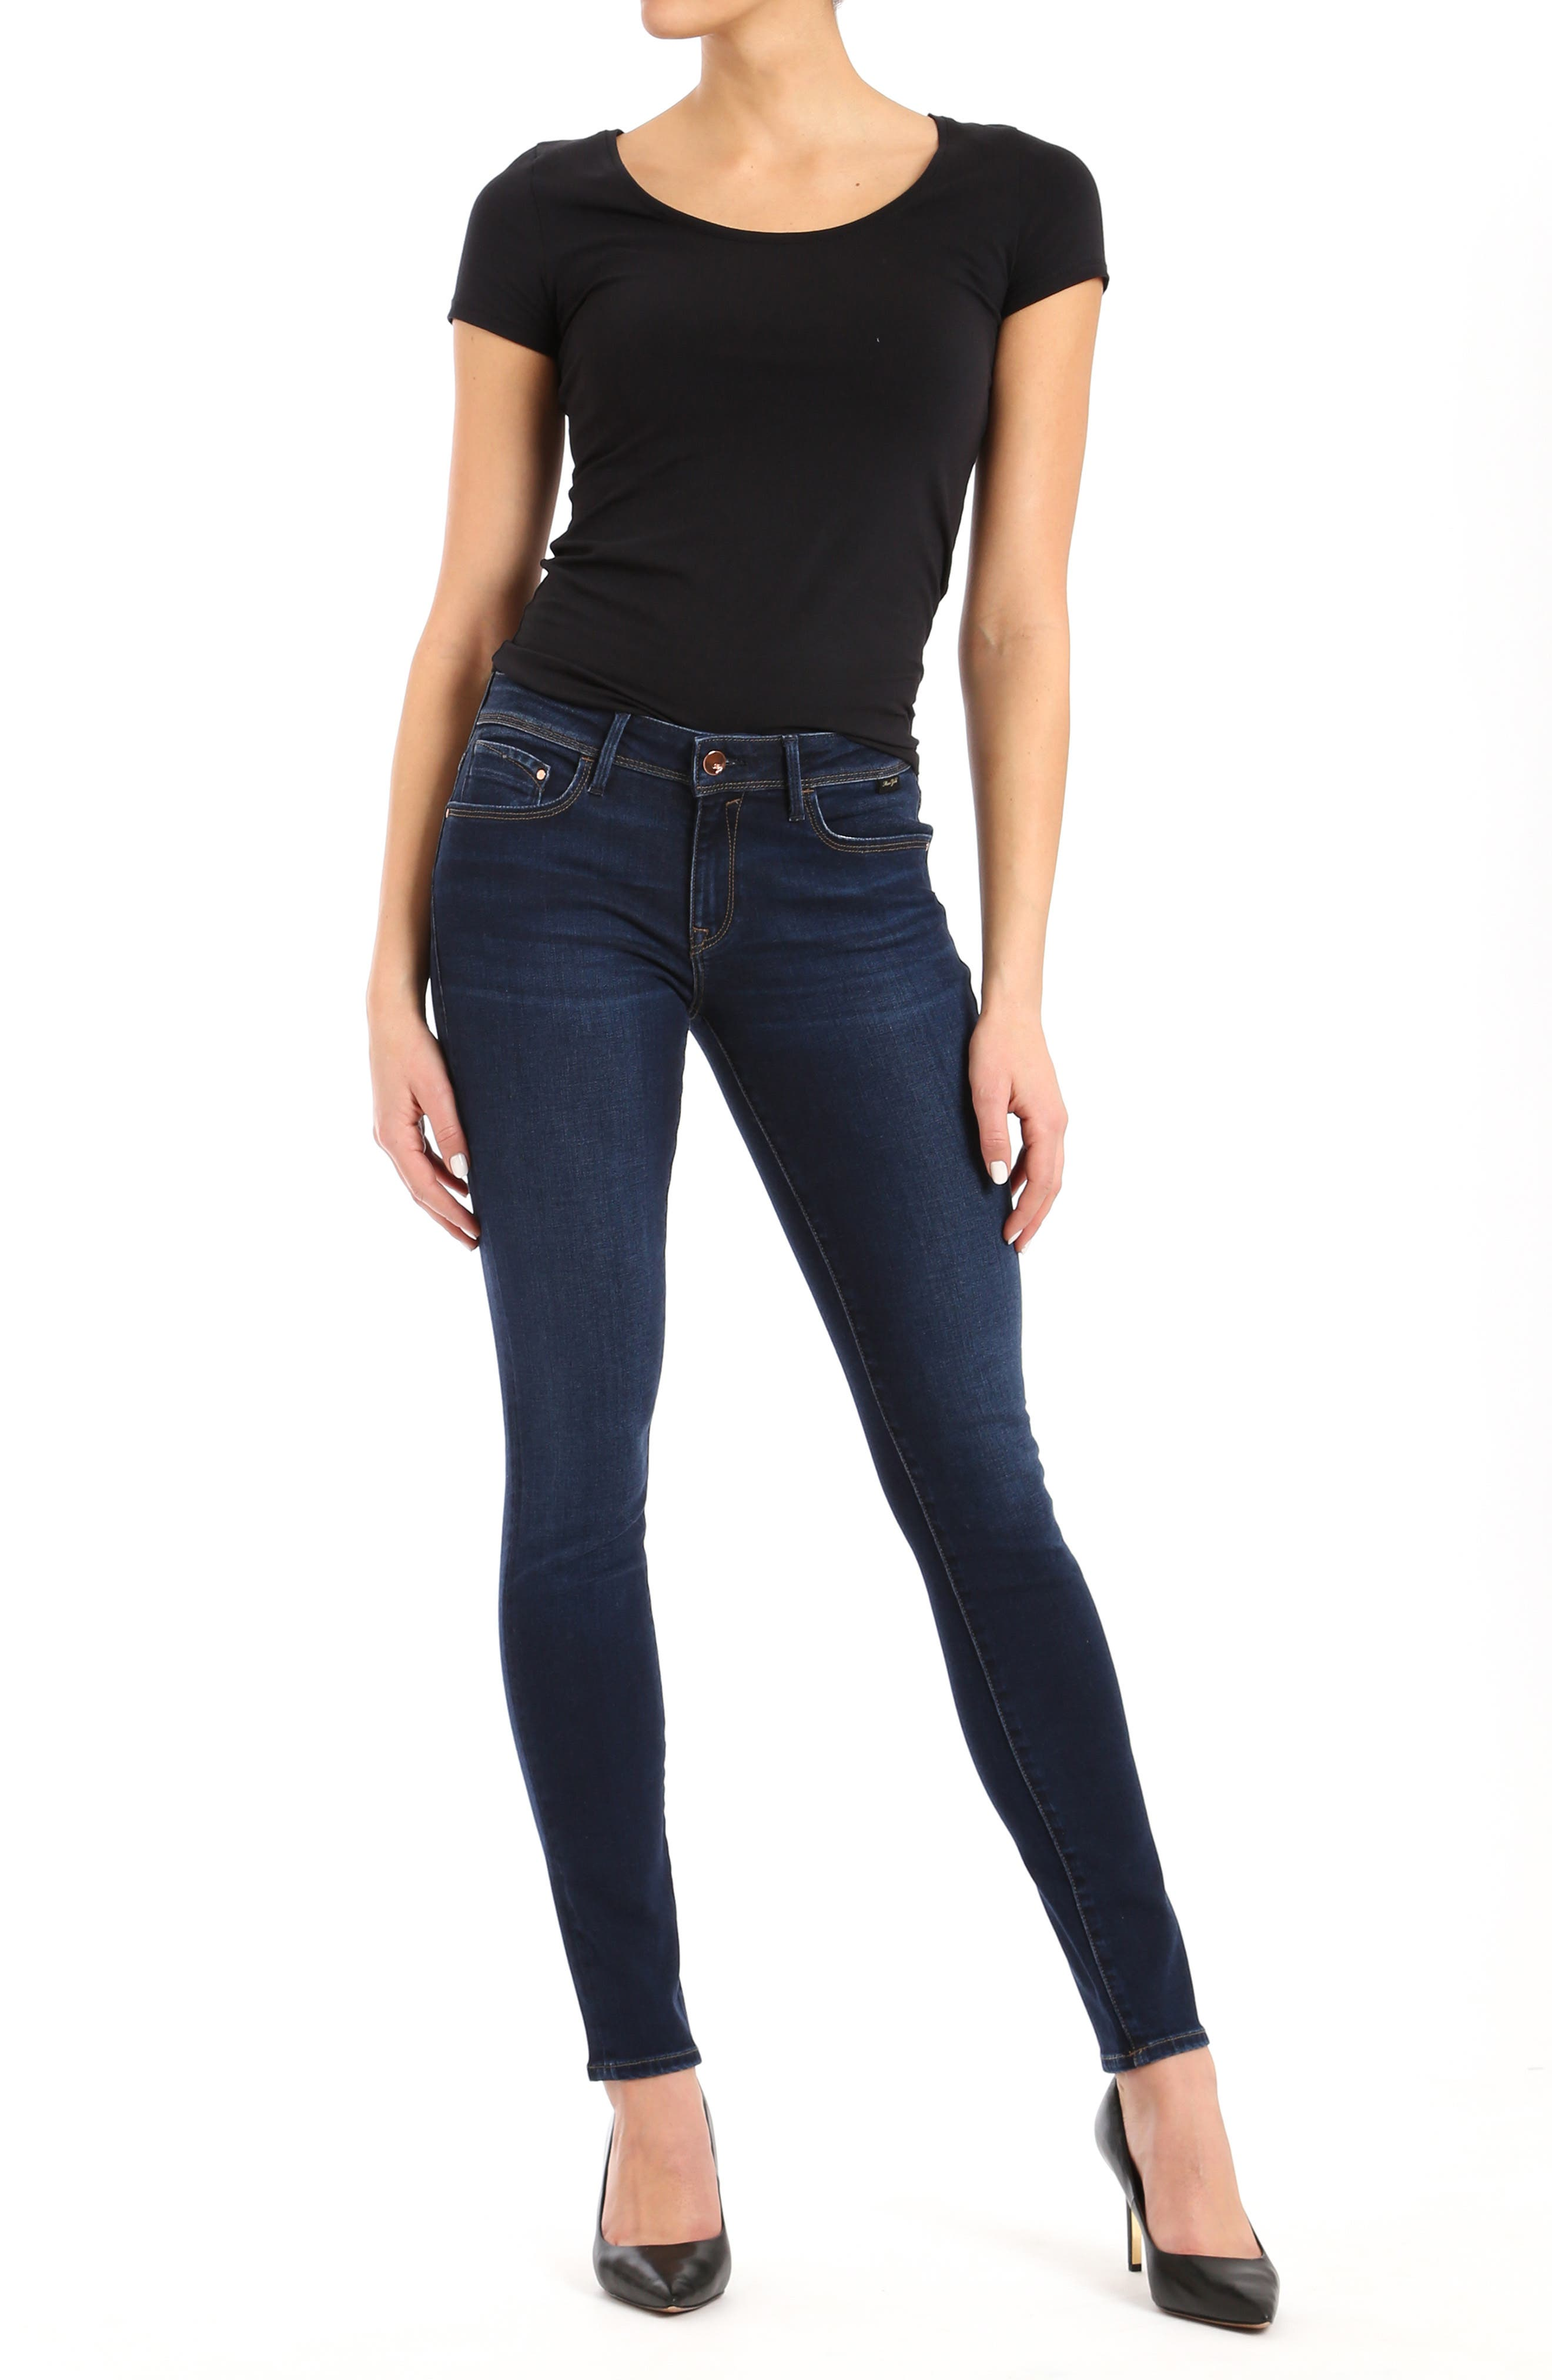 Alexa Skinny Jeans,                             Alternate thumbnail 4, color,                             DEEP SOFT GOLD LUX MOVE